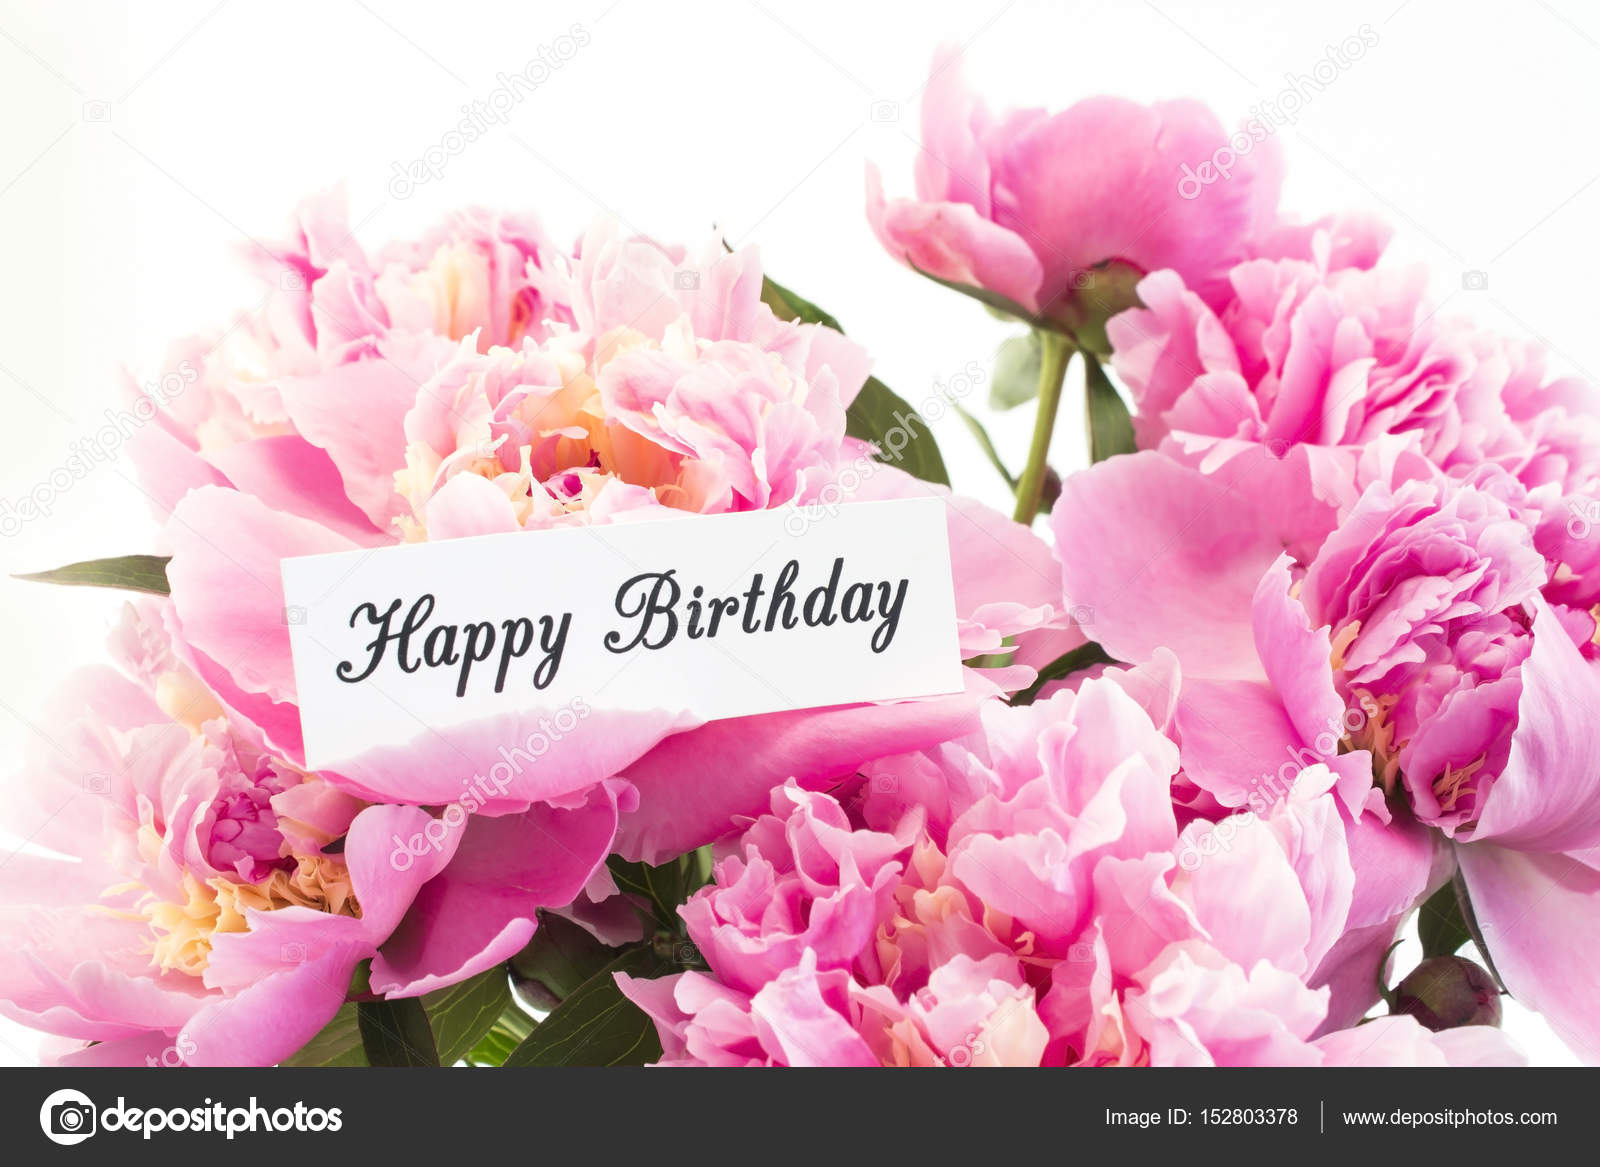 Happy birthday card with bouquet of pink peonies stock photo happy birthday card with bouquet of pink peonies stock photo izmirmasajfo